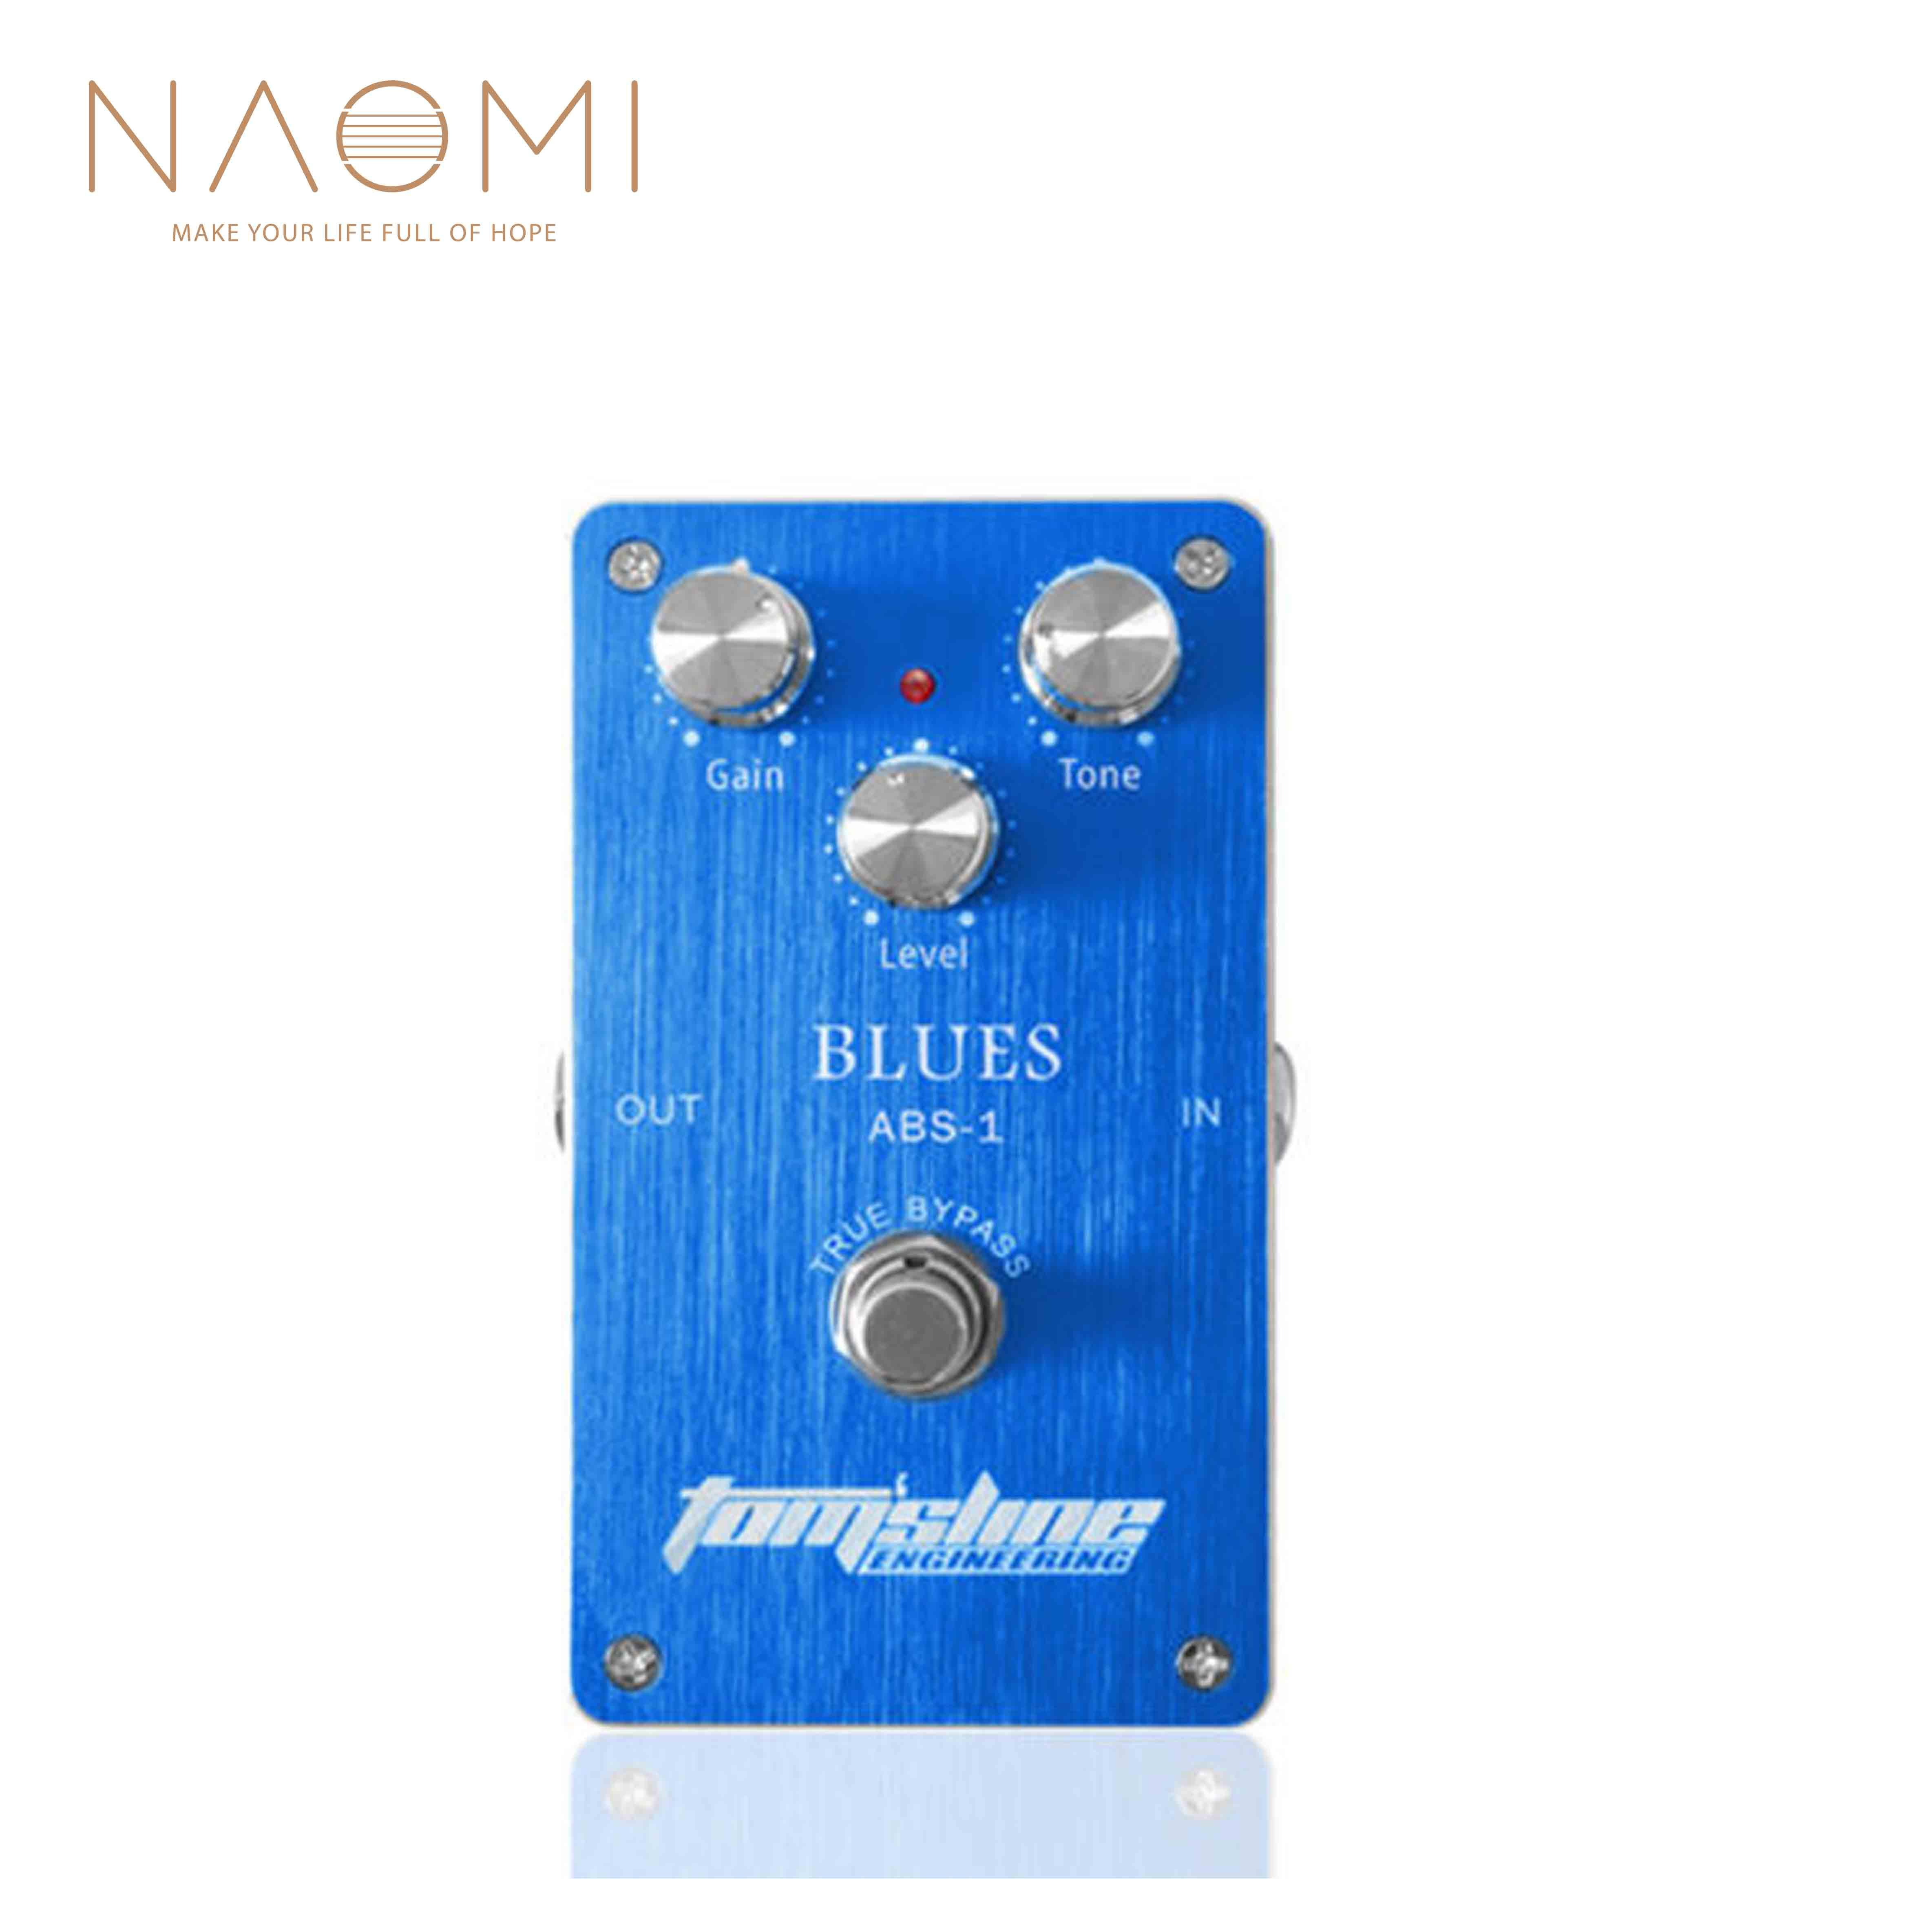 NAOMI Effect Pedal Aroma ABS-1 Blues Distortion Guitar Pedal Aluminum Alloy True Bypass Guitar Parts Accessories New